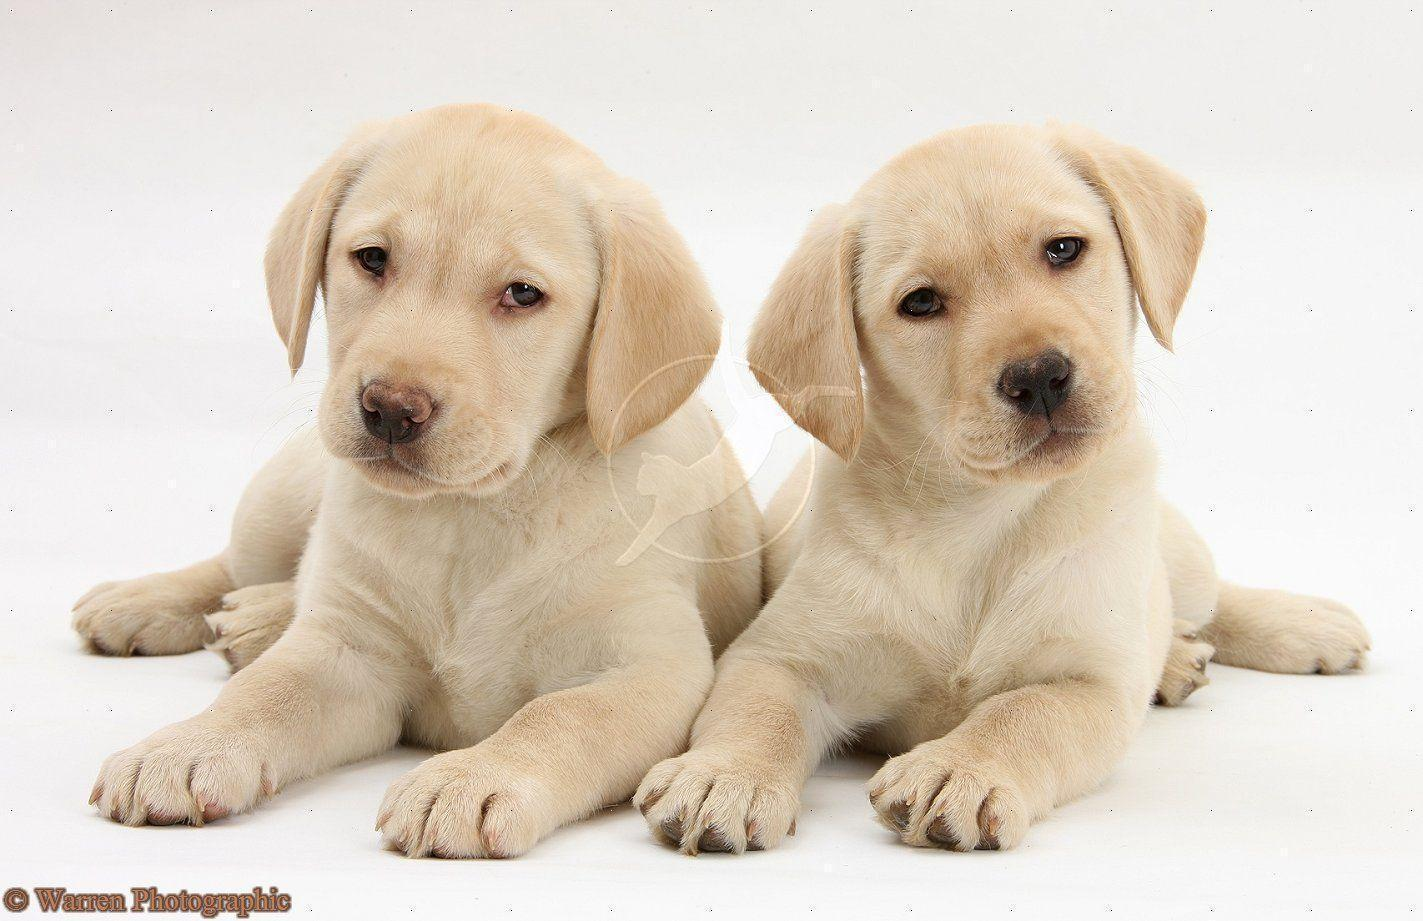 yellow lab puppy wallpaper - photo #2